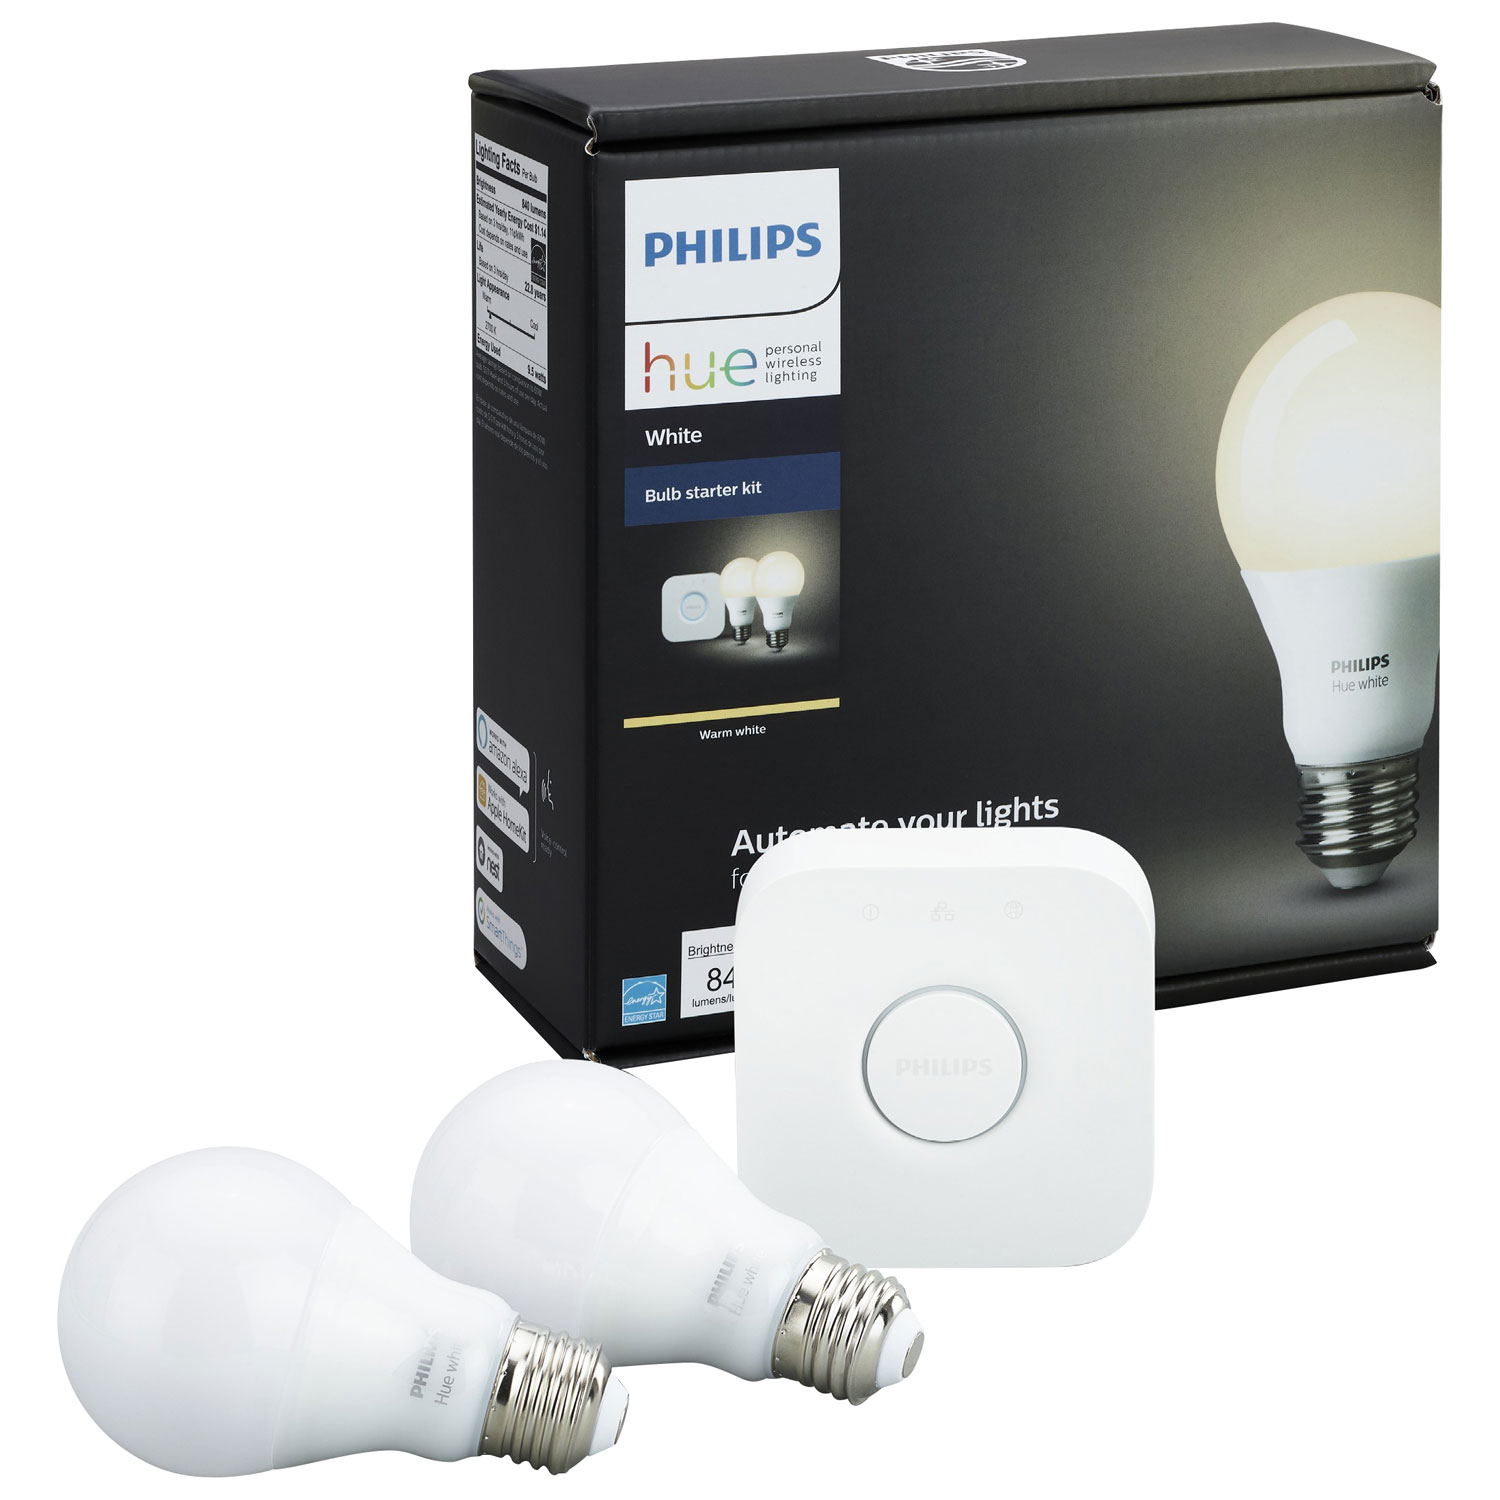 Philips Hue A19 Smart Led Starter Kit White Lights Best Details About Lighting Control Voice Activated 12v Switch Lamp Solar Buy Canada